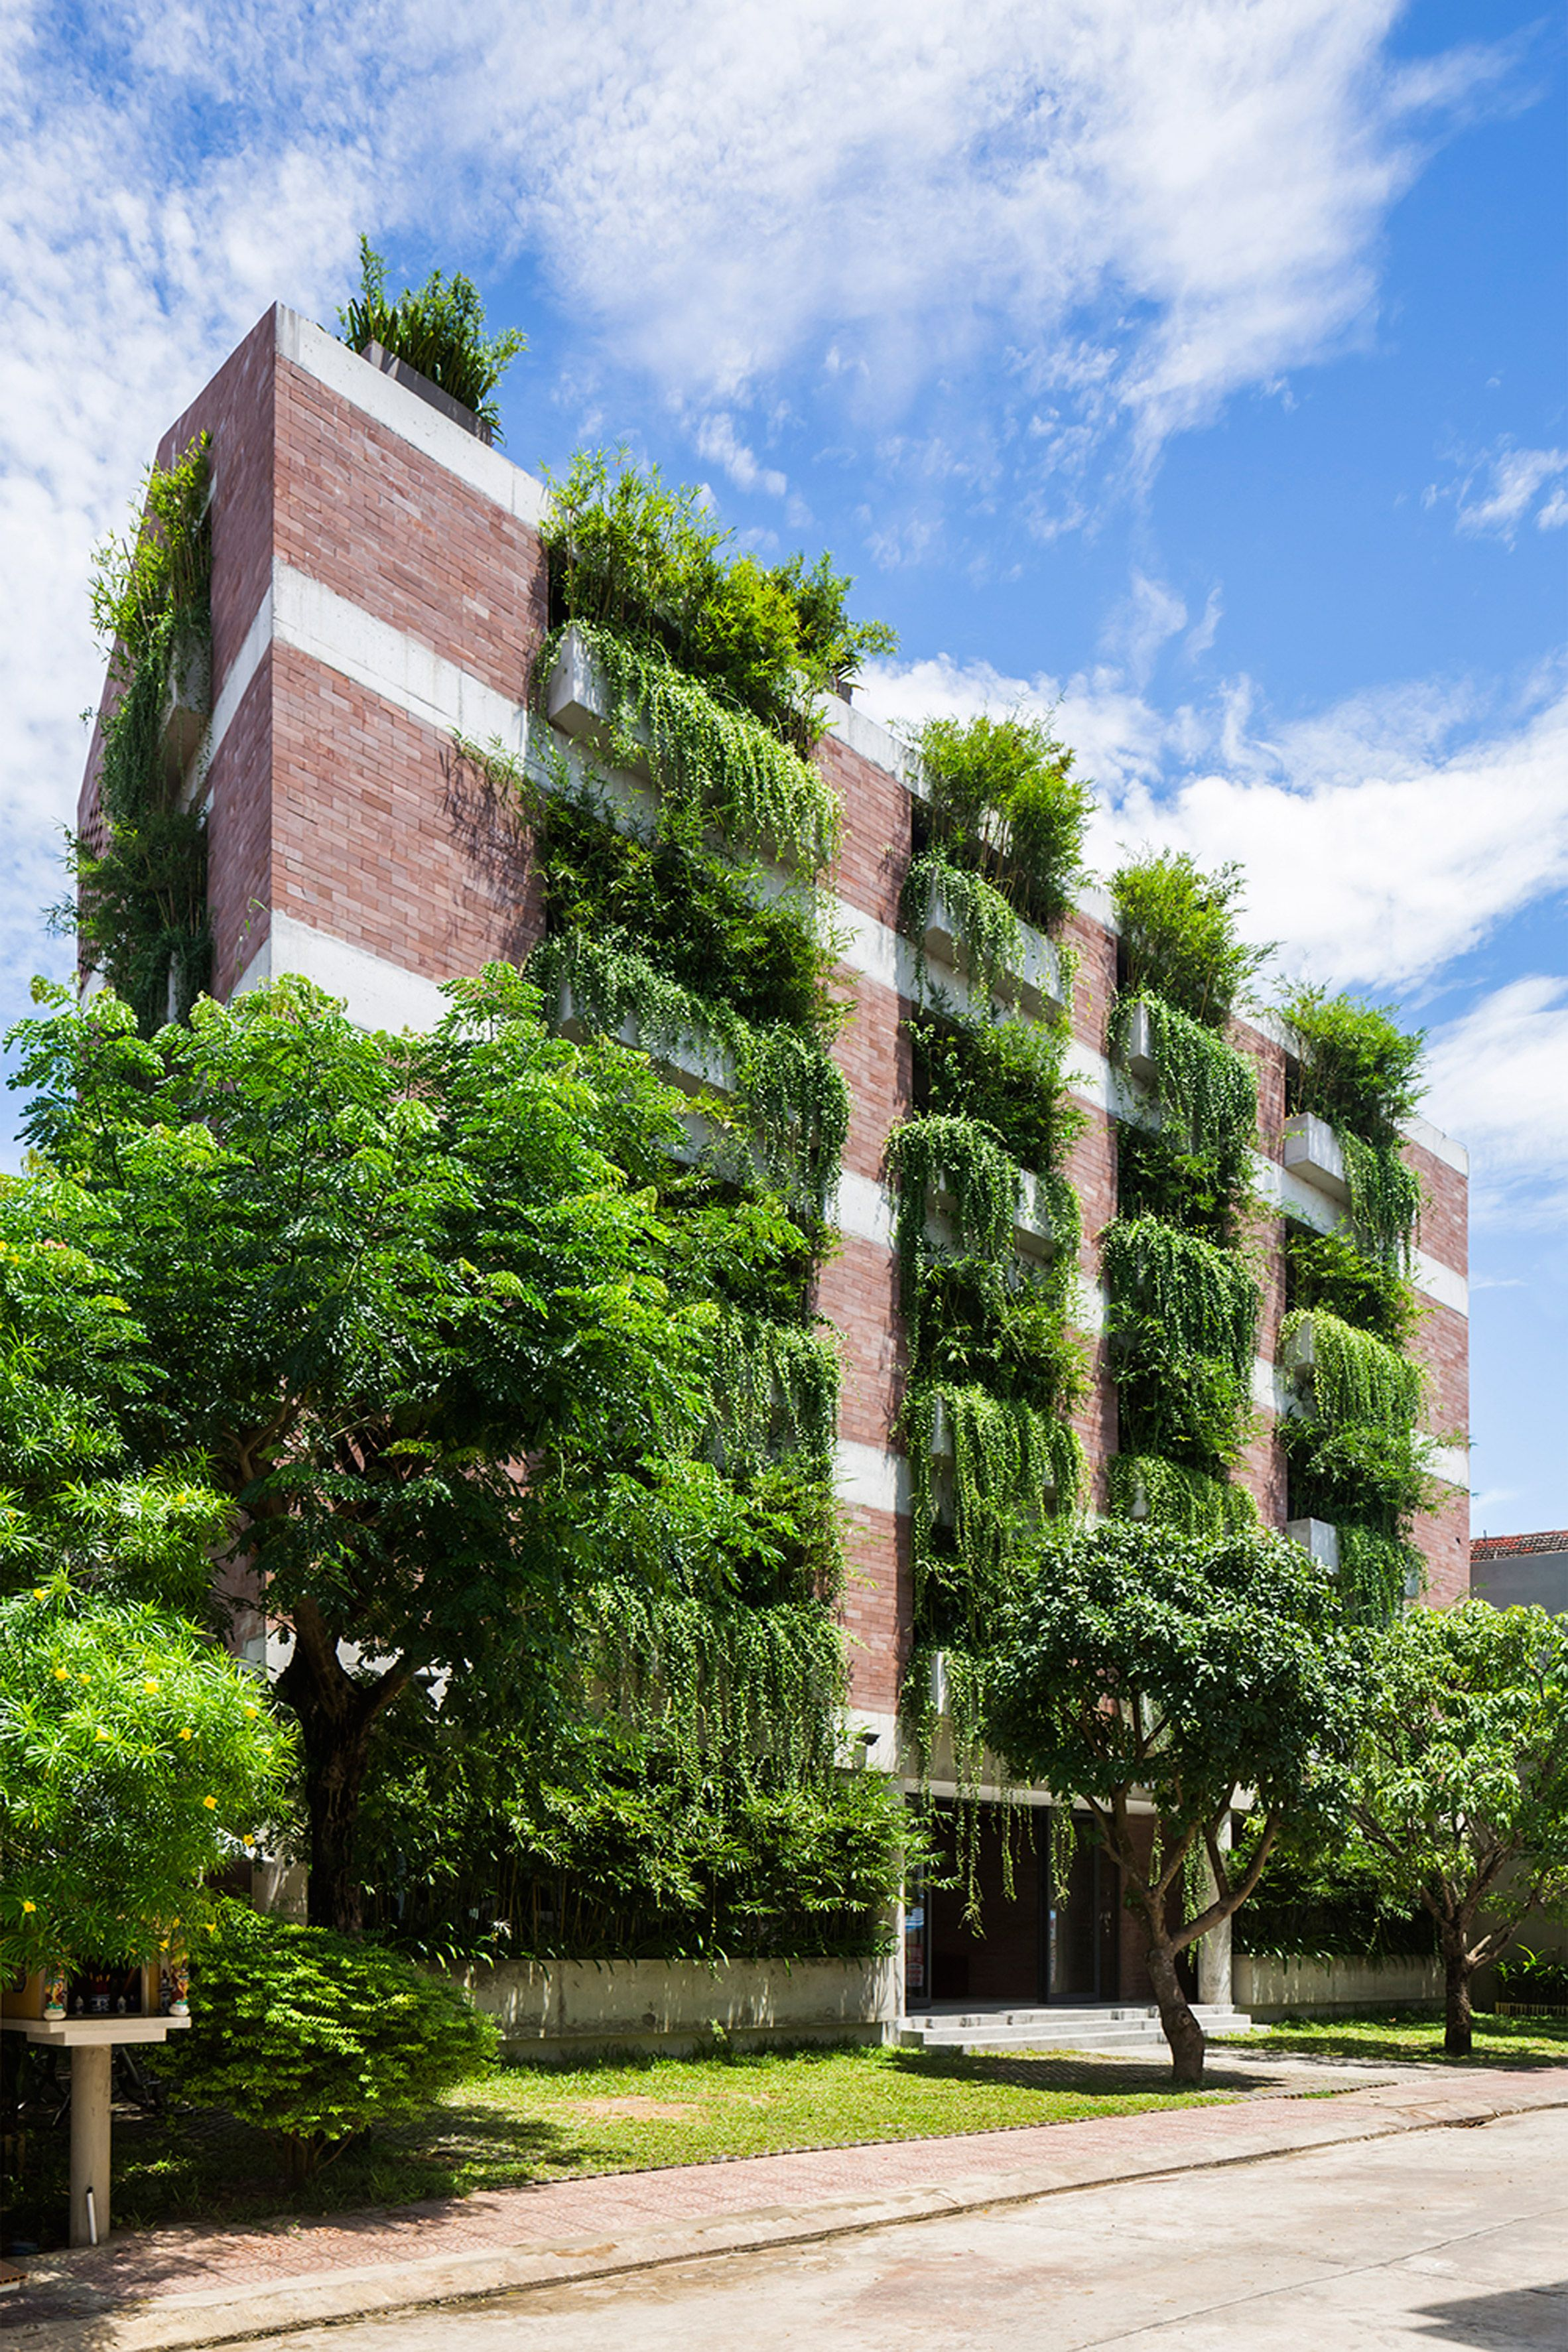 Vo Trong Nghia Completes Vietnam Hotel Featuring Walls Of Hanging Plants Sandstone Wall Green Facade Hanging Plants